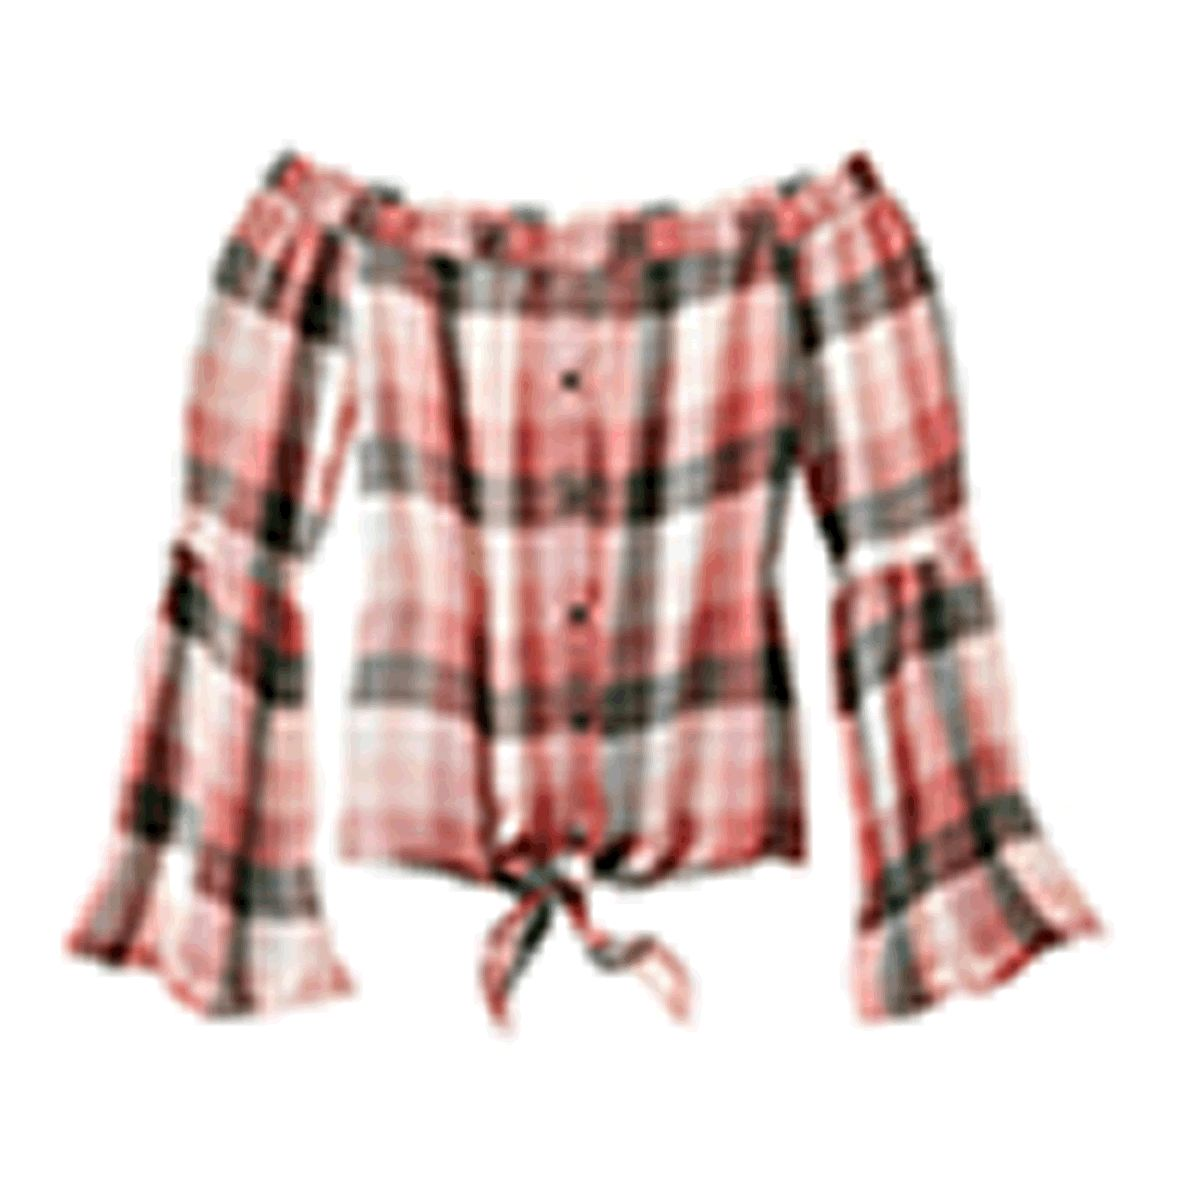 American Rag Juniors Clothing - Dresses & Jeans - Macy's